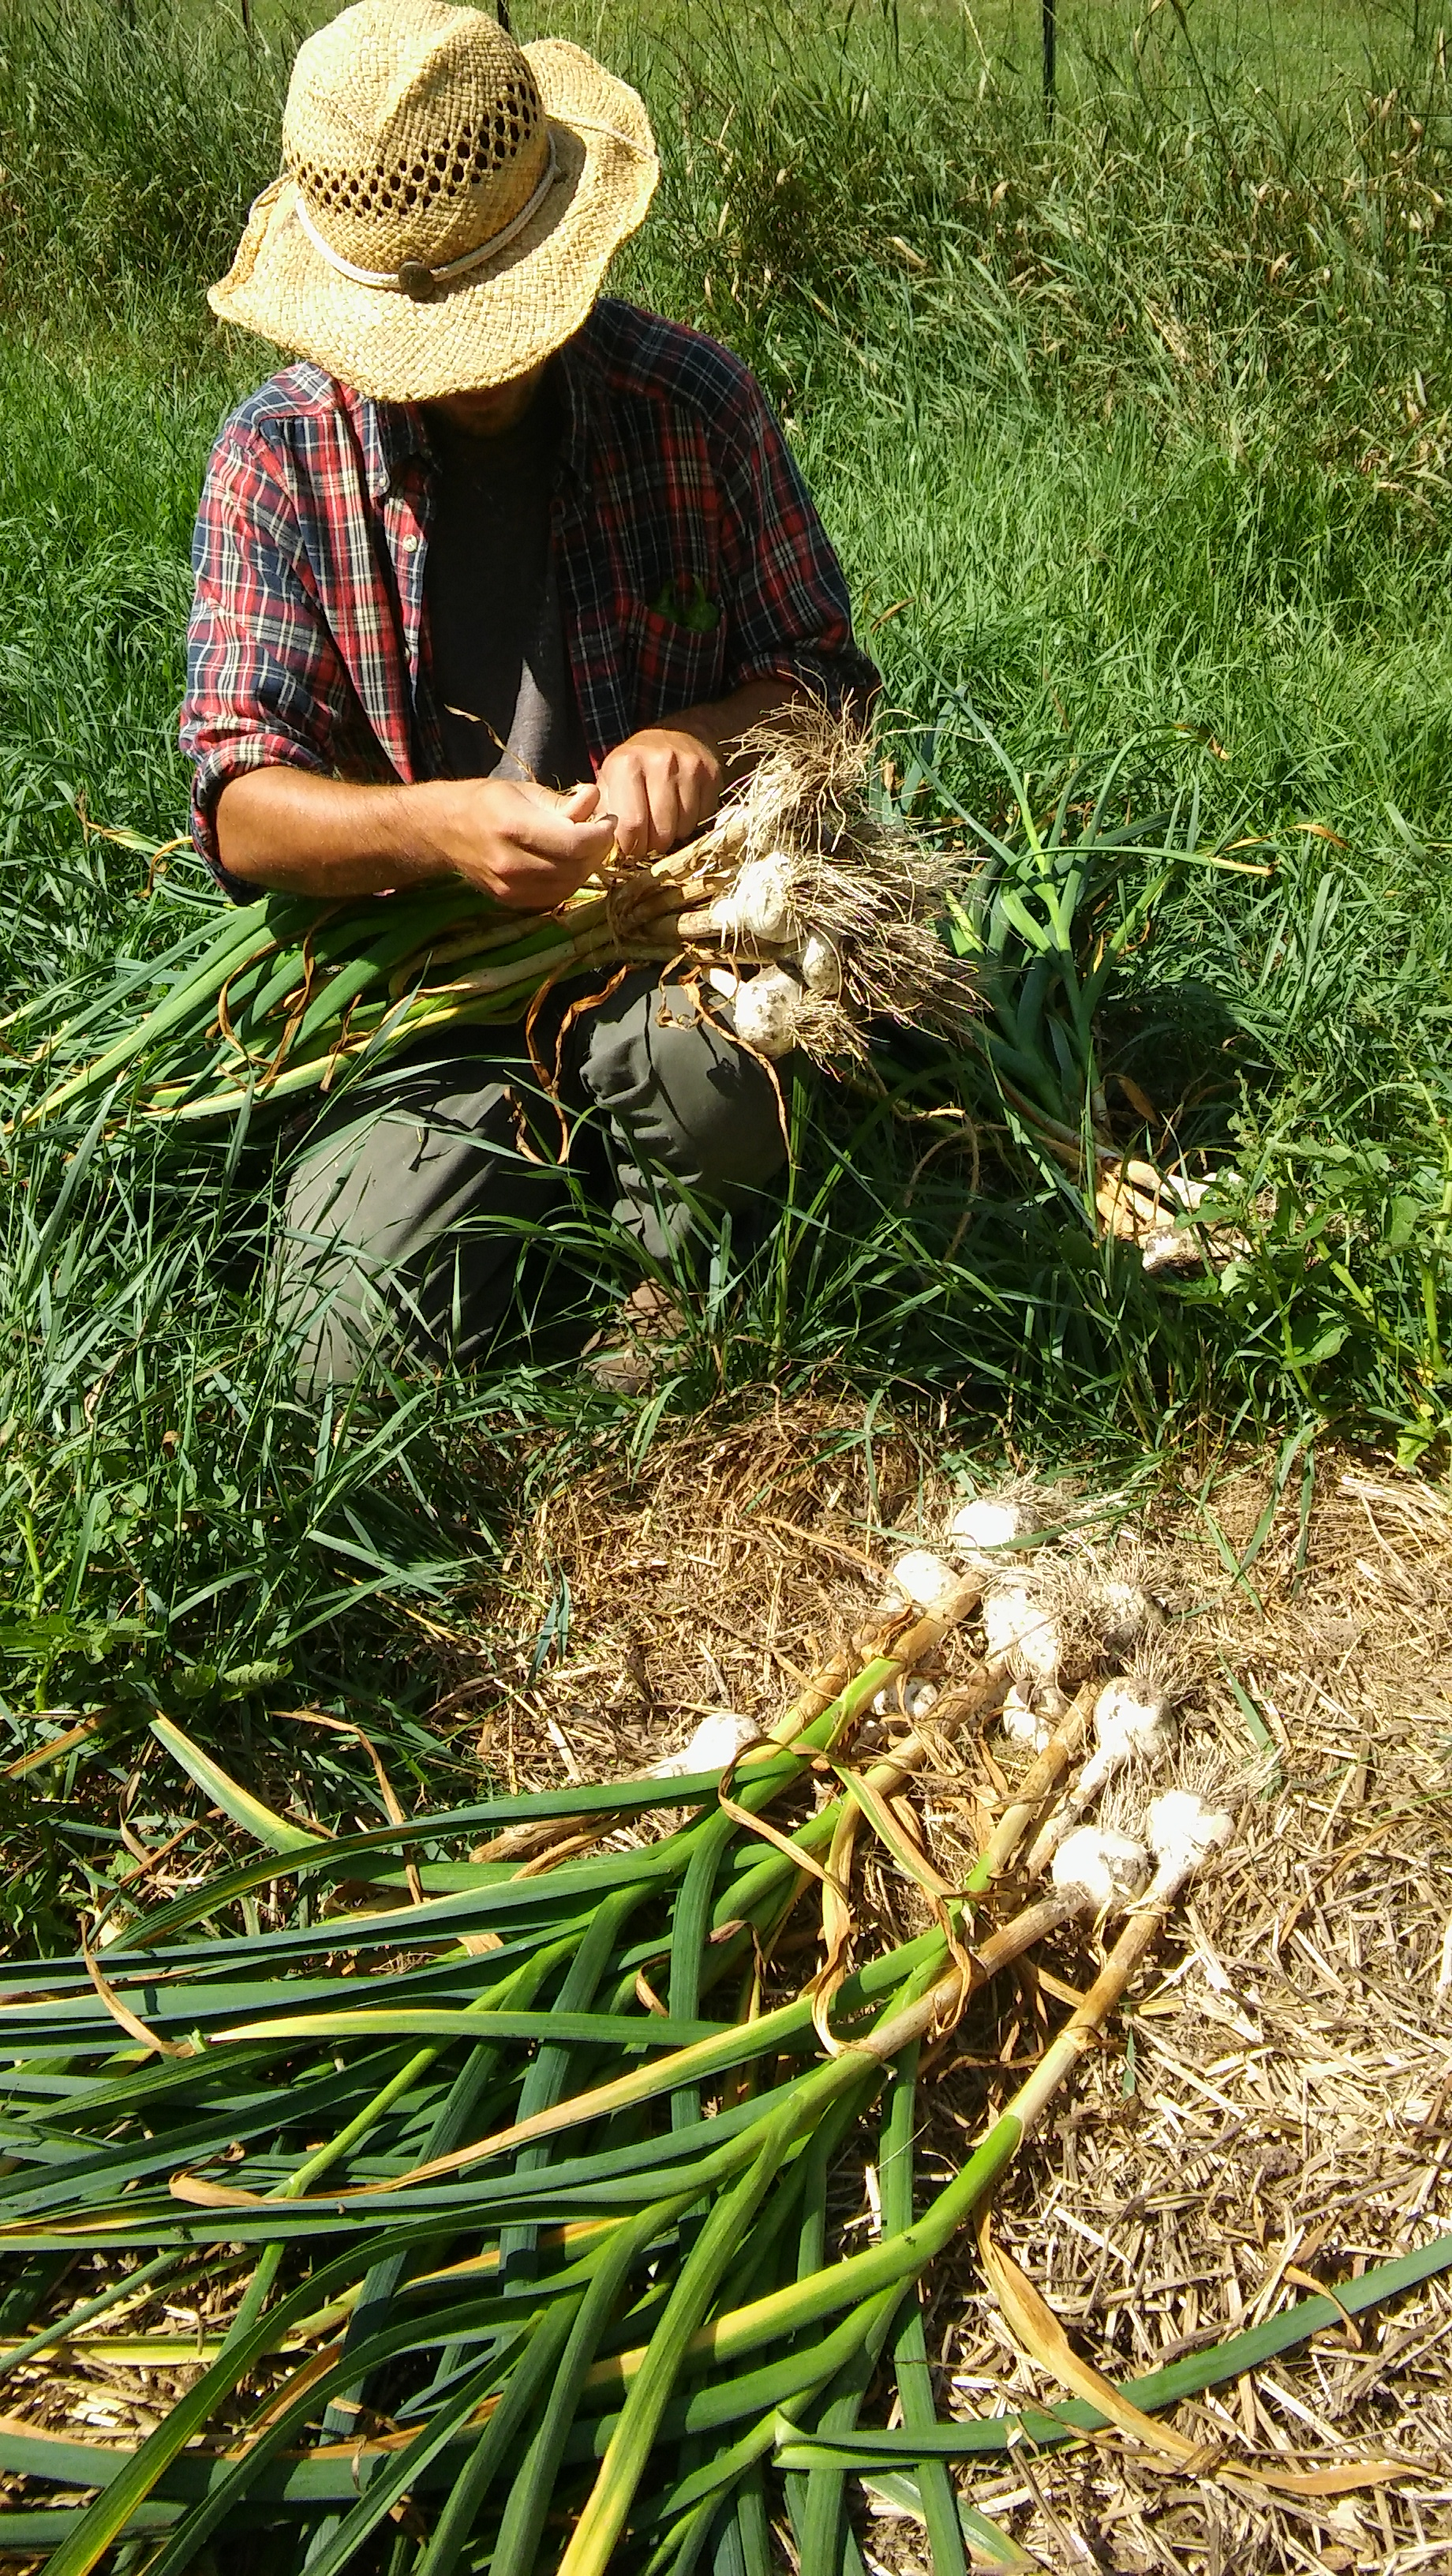 Casey bundles garlic, Folk Tree Farm